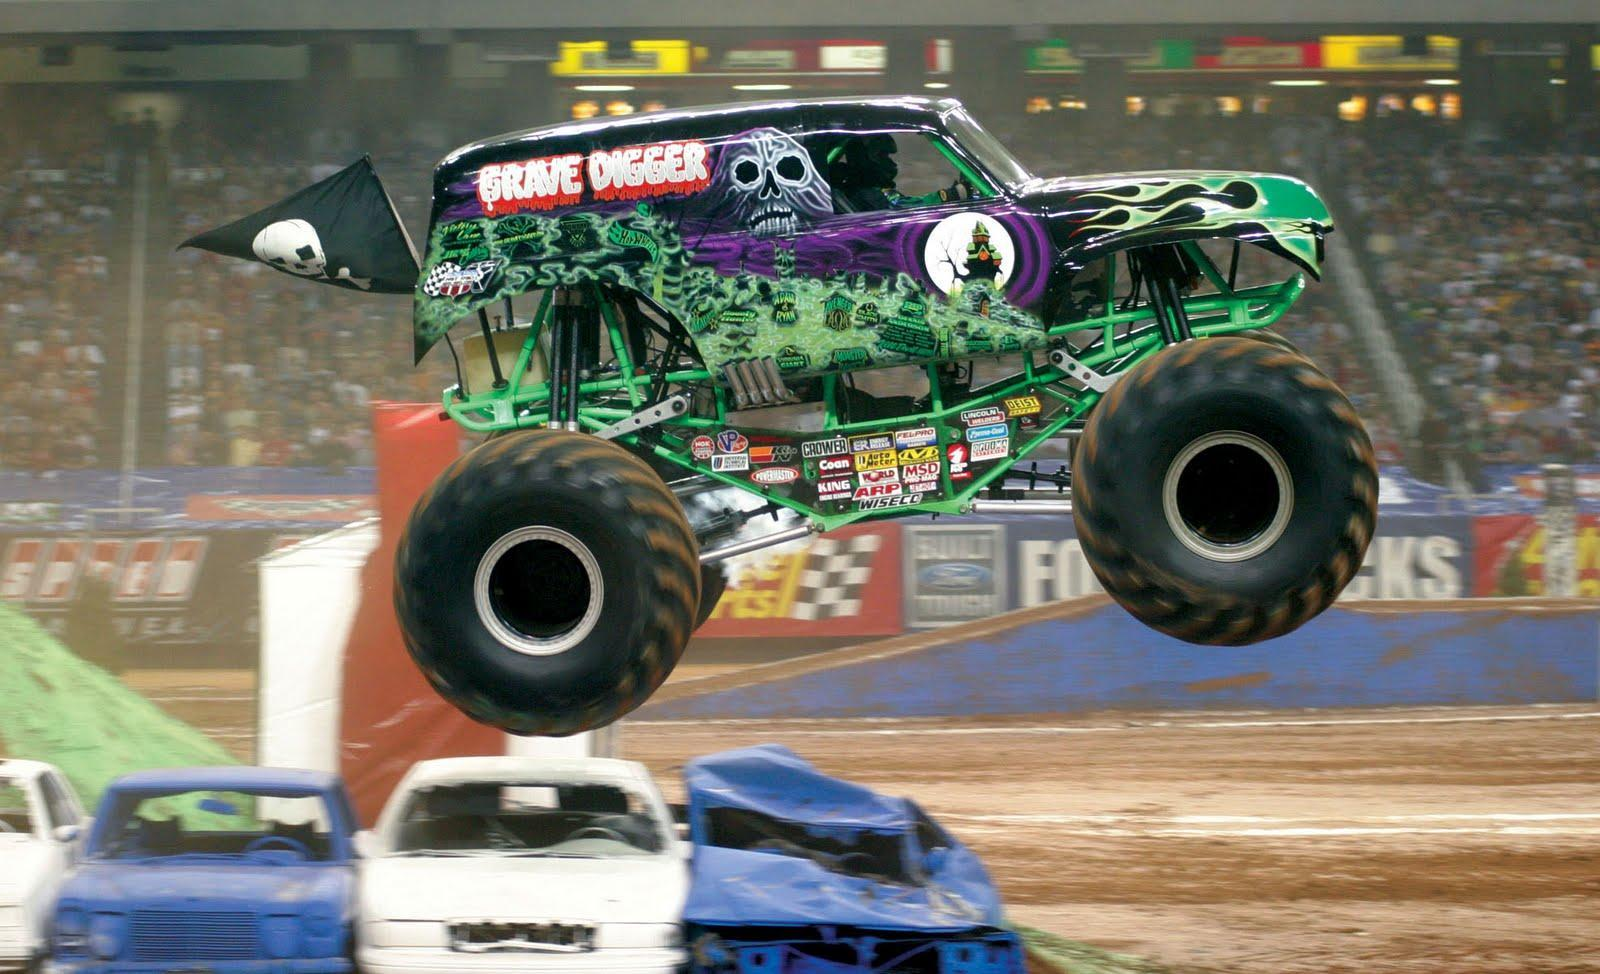 Grave Digger Wallpapers Wallpaper Cave